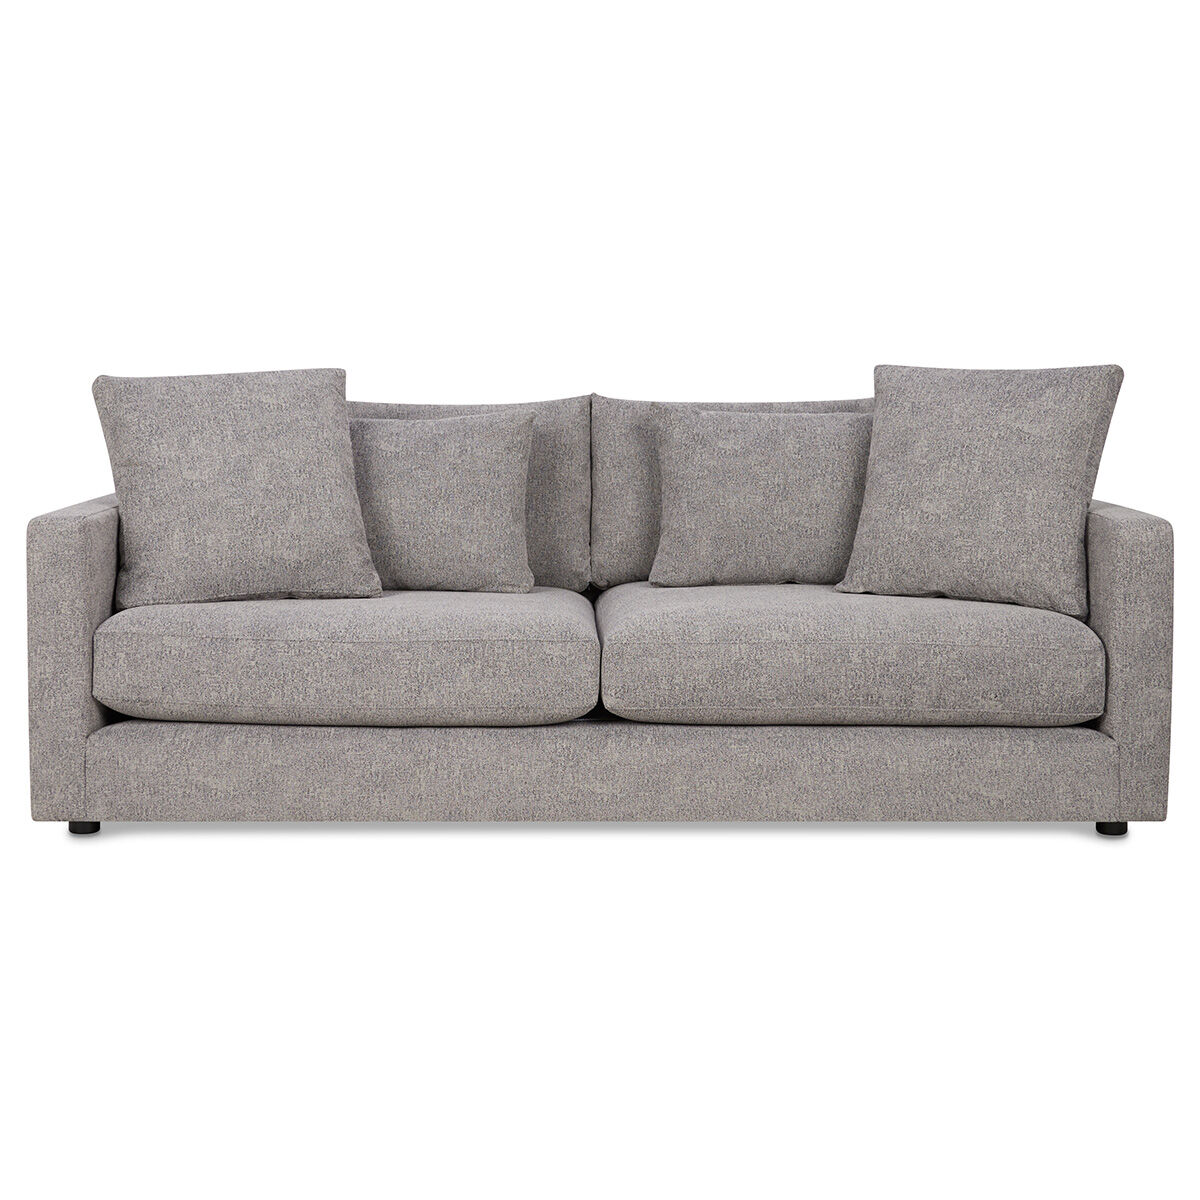 luxe 2 seat sofa slipcover leather paint touch up sofas living urban barn berg aiden sterling